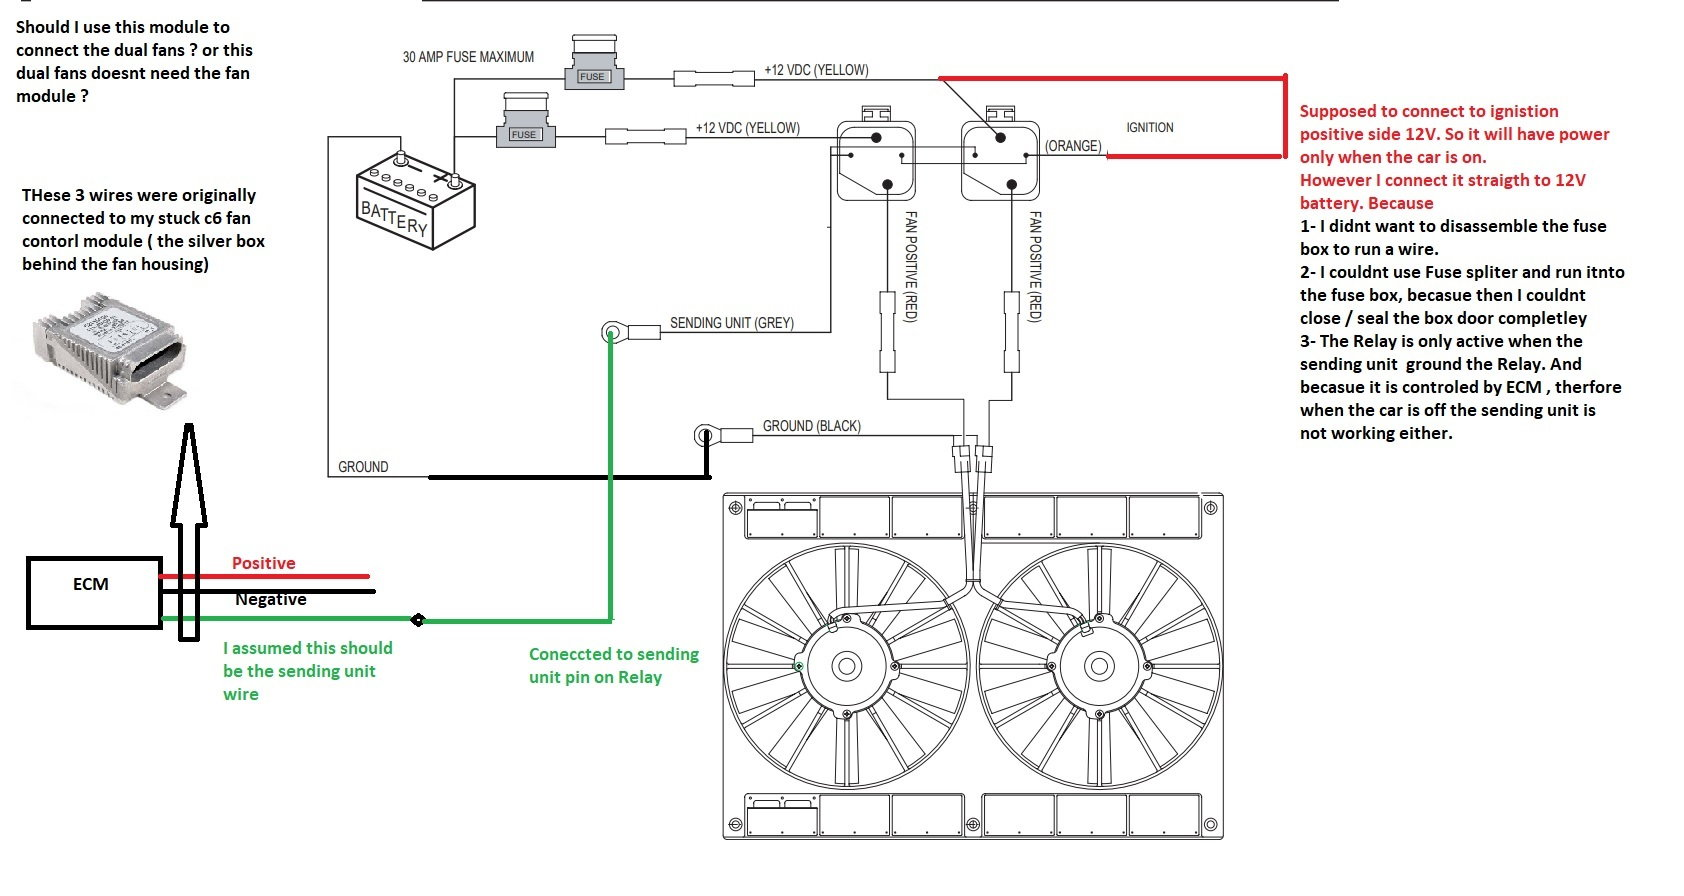 hight resolution of 4 each fan draw 15amp when they start working and each fan has 30 amp fuse